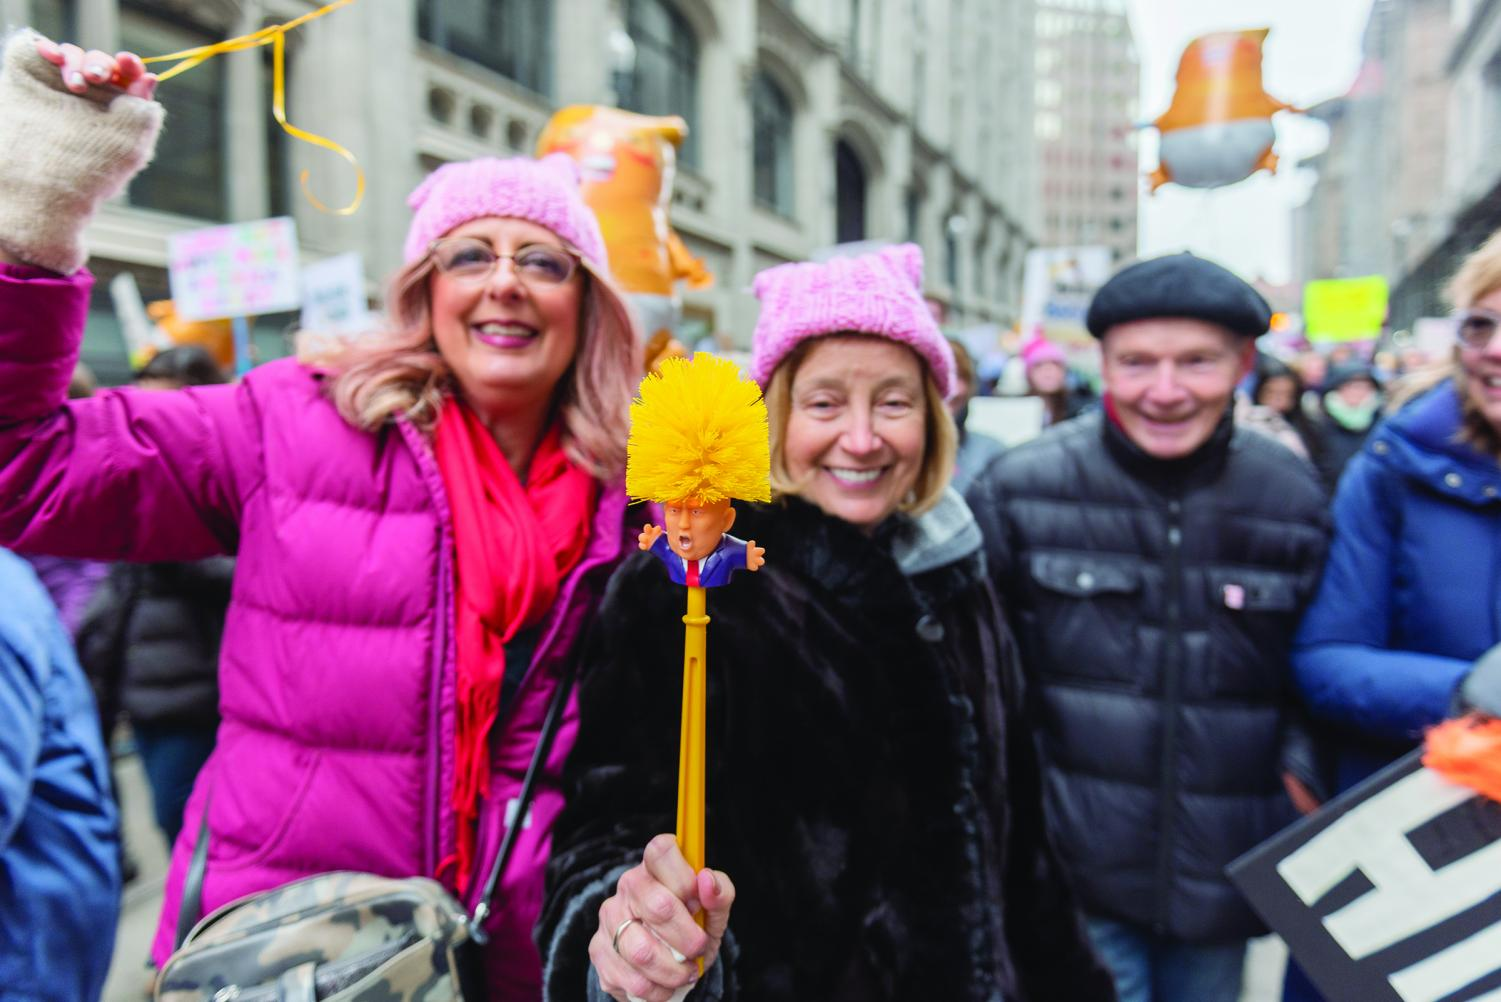 Women's March participants travel down Grant Street as one attendee proudly displays a toilet brush containing the likeness of President Donald Trump.